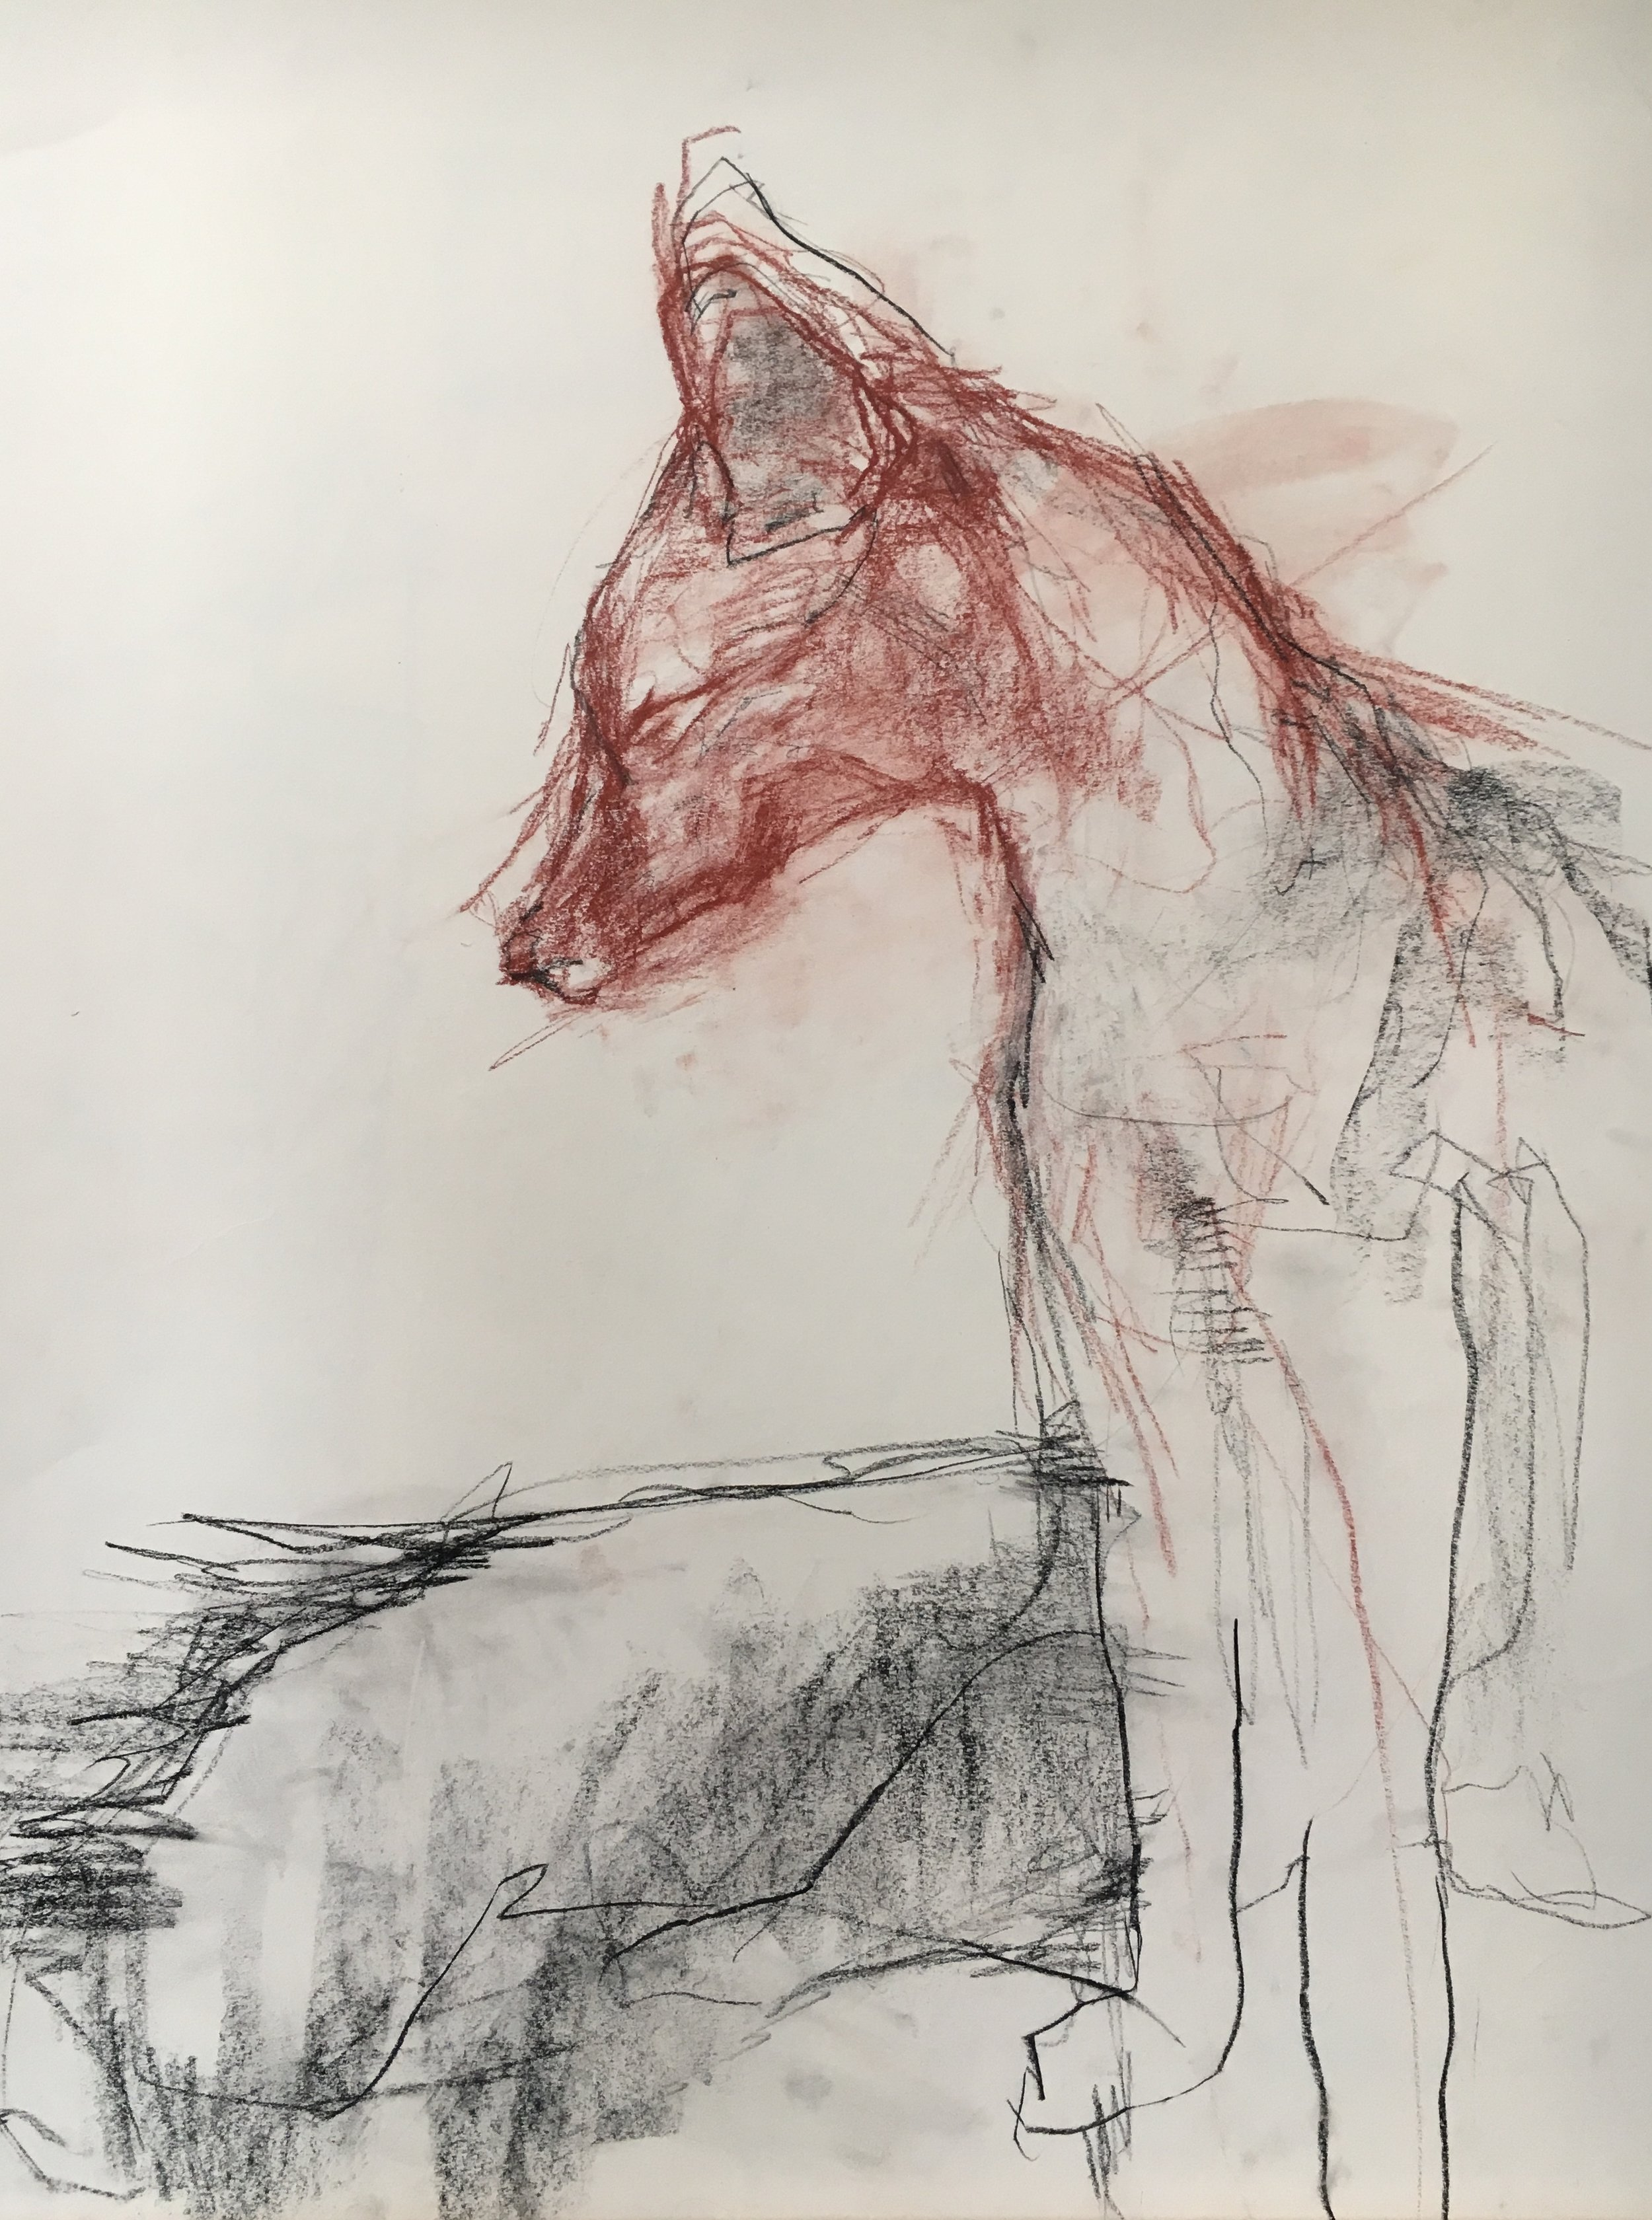 Mr Fox, Red Tail Fox Taxidermy  Conte crayon and charcoal on cream drawing paper 18 x 24 inches 2014